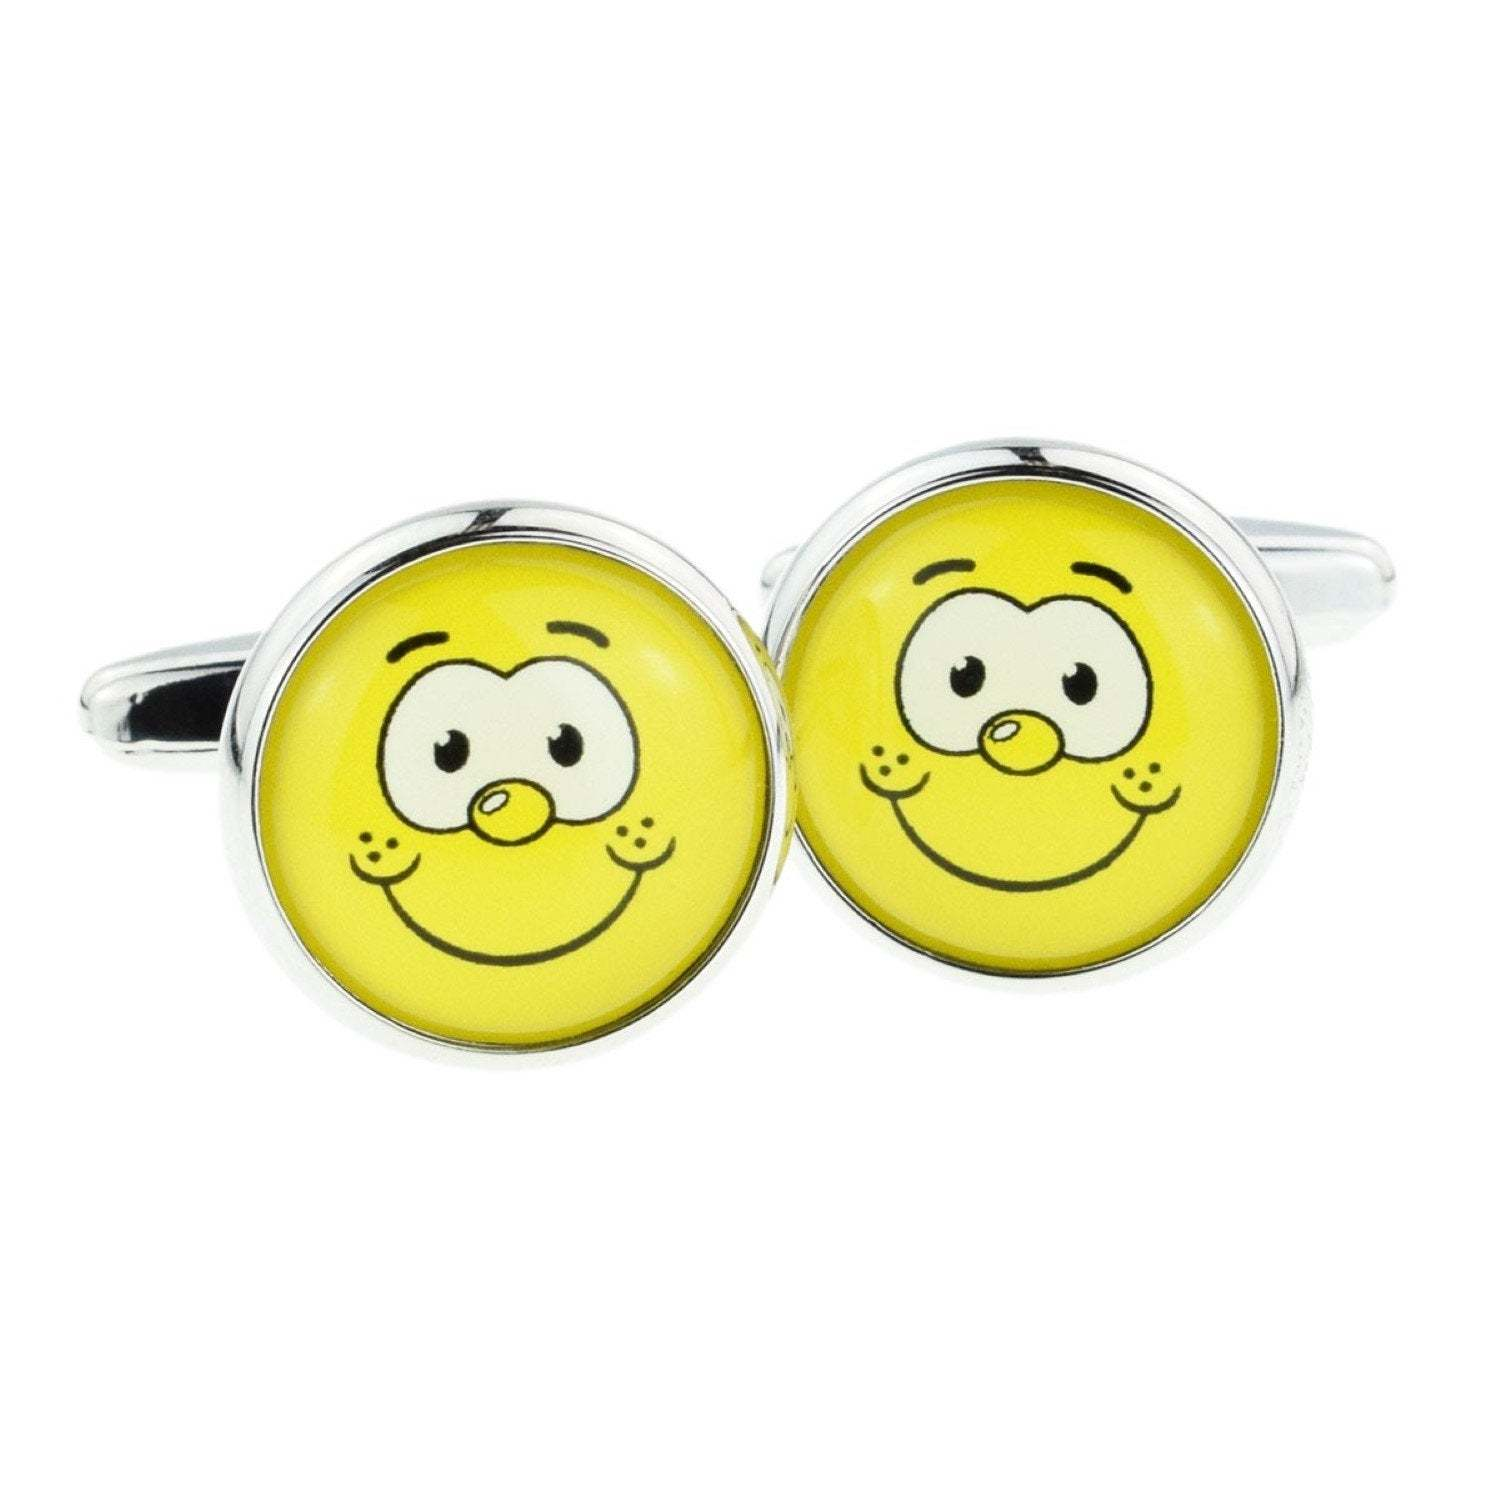 funny smiley yellow facedcuff link design . gift boxed cufflinks ideal gift